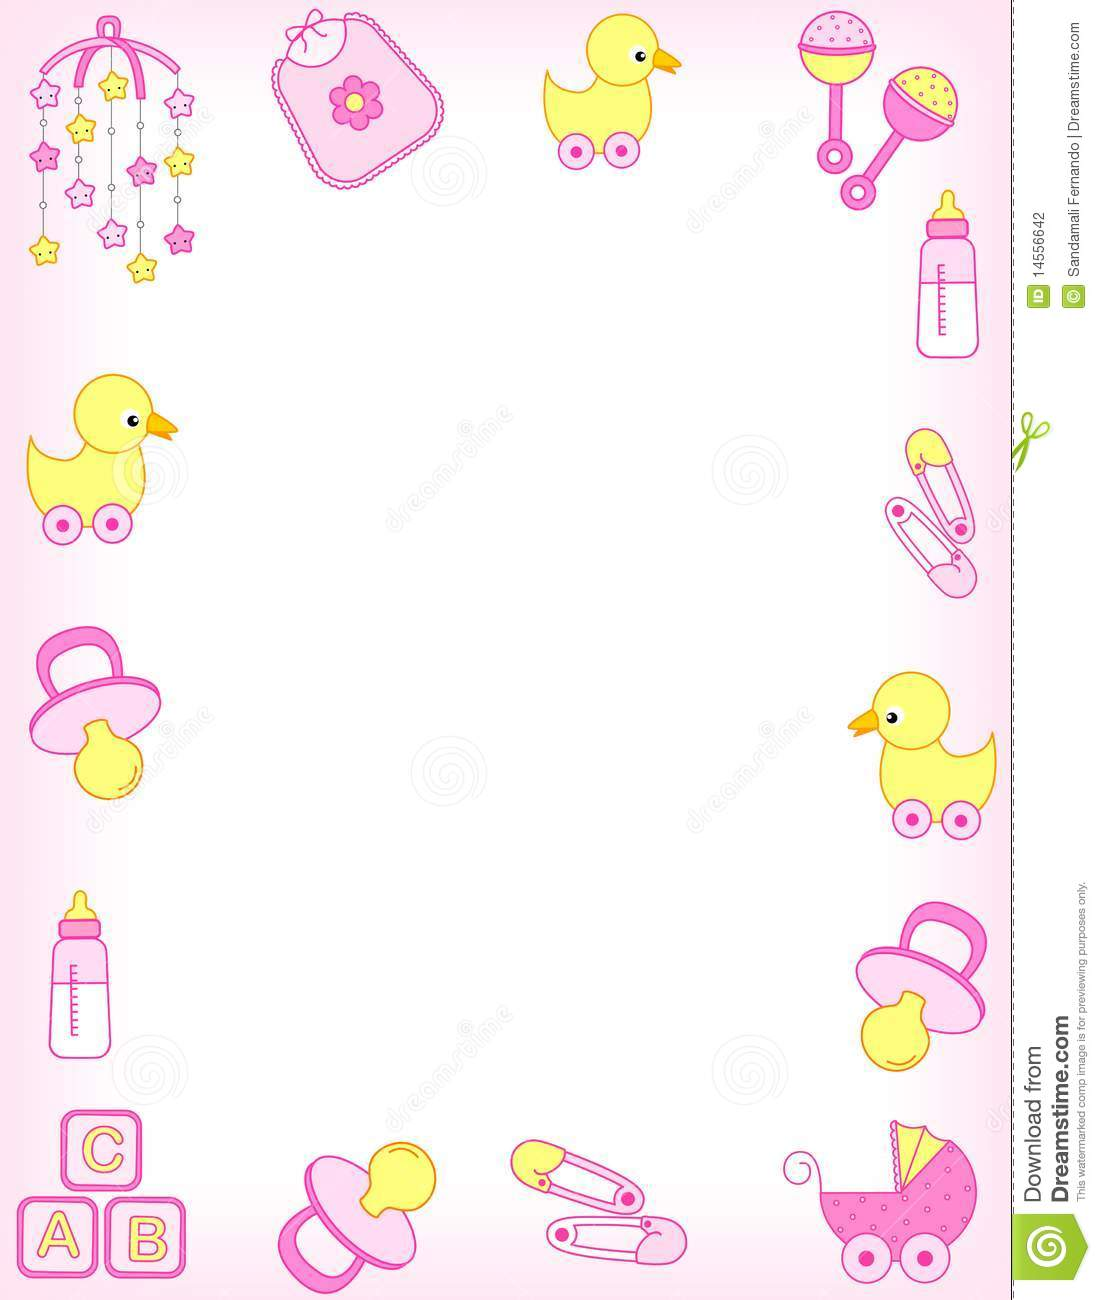 Baby girl clipart border png freeuse library Baby Girl Borders Clipart - Clipart Kid png freeuse library